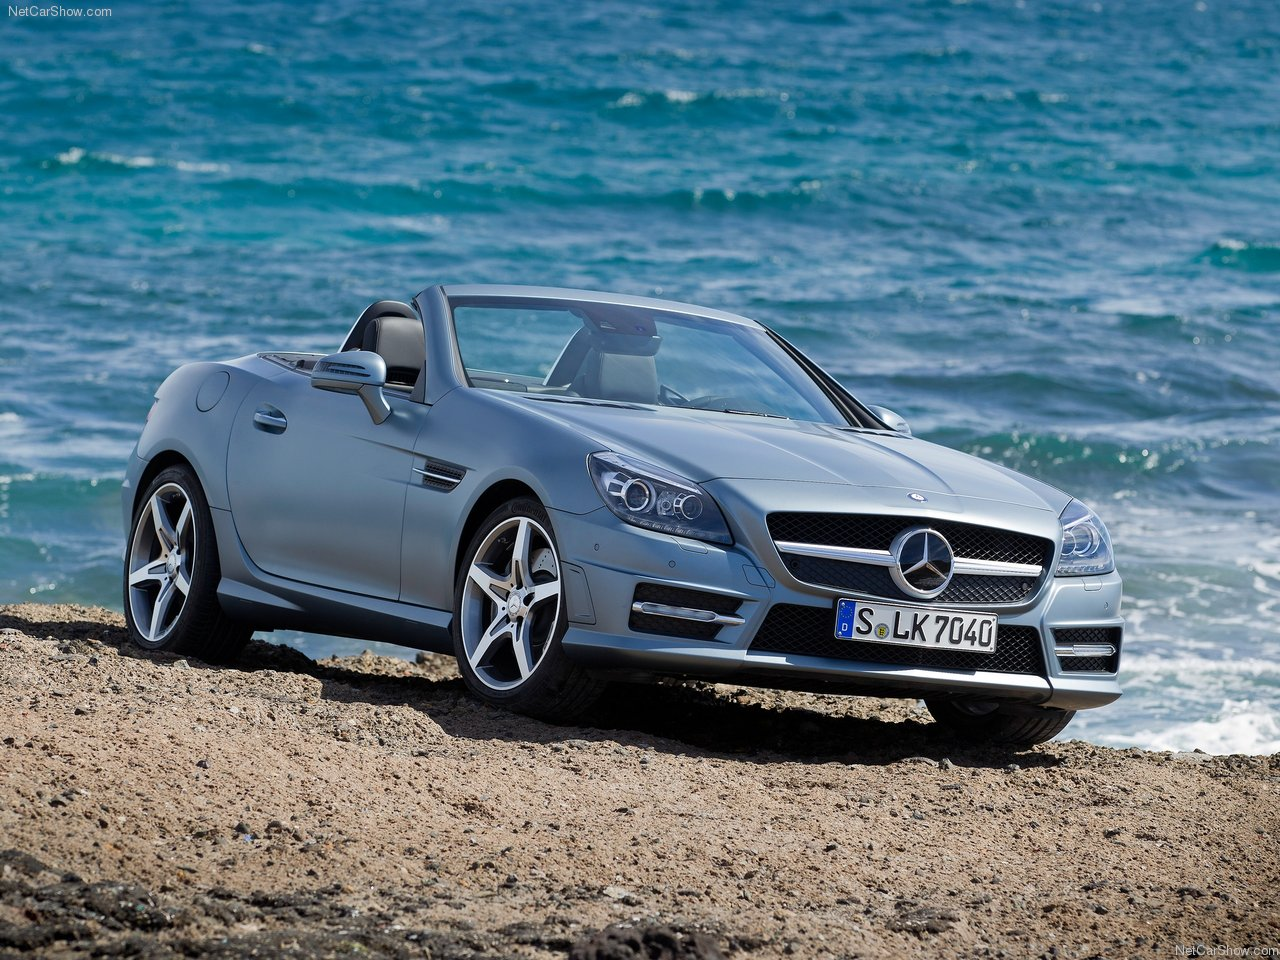 2012 mercedes benz slk350 mercedes benz cars for 2012 mercedes benz slk350